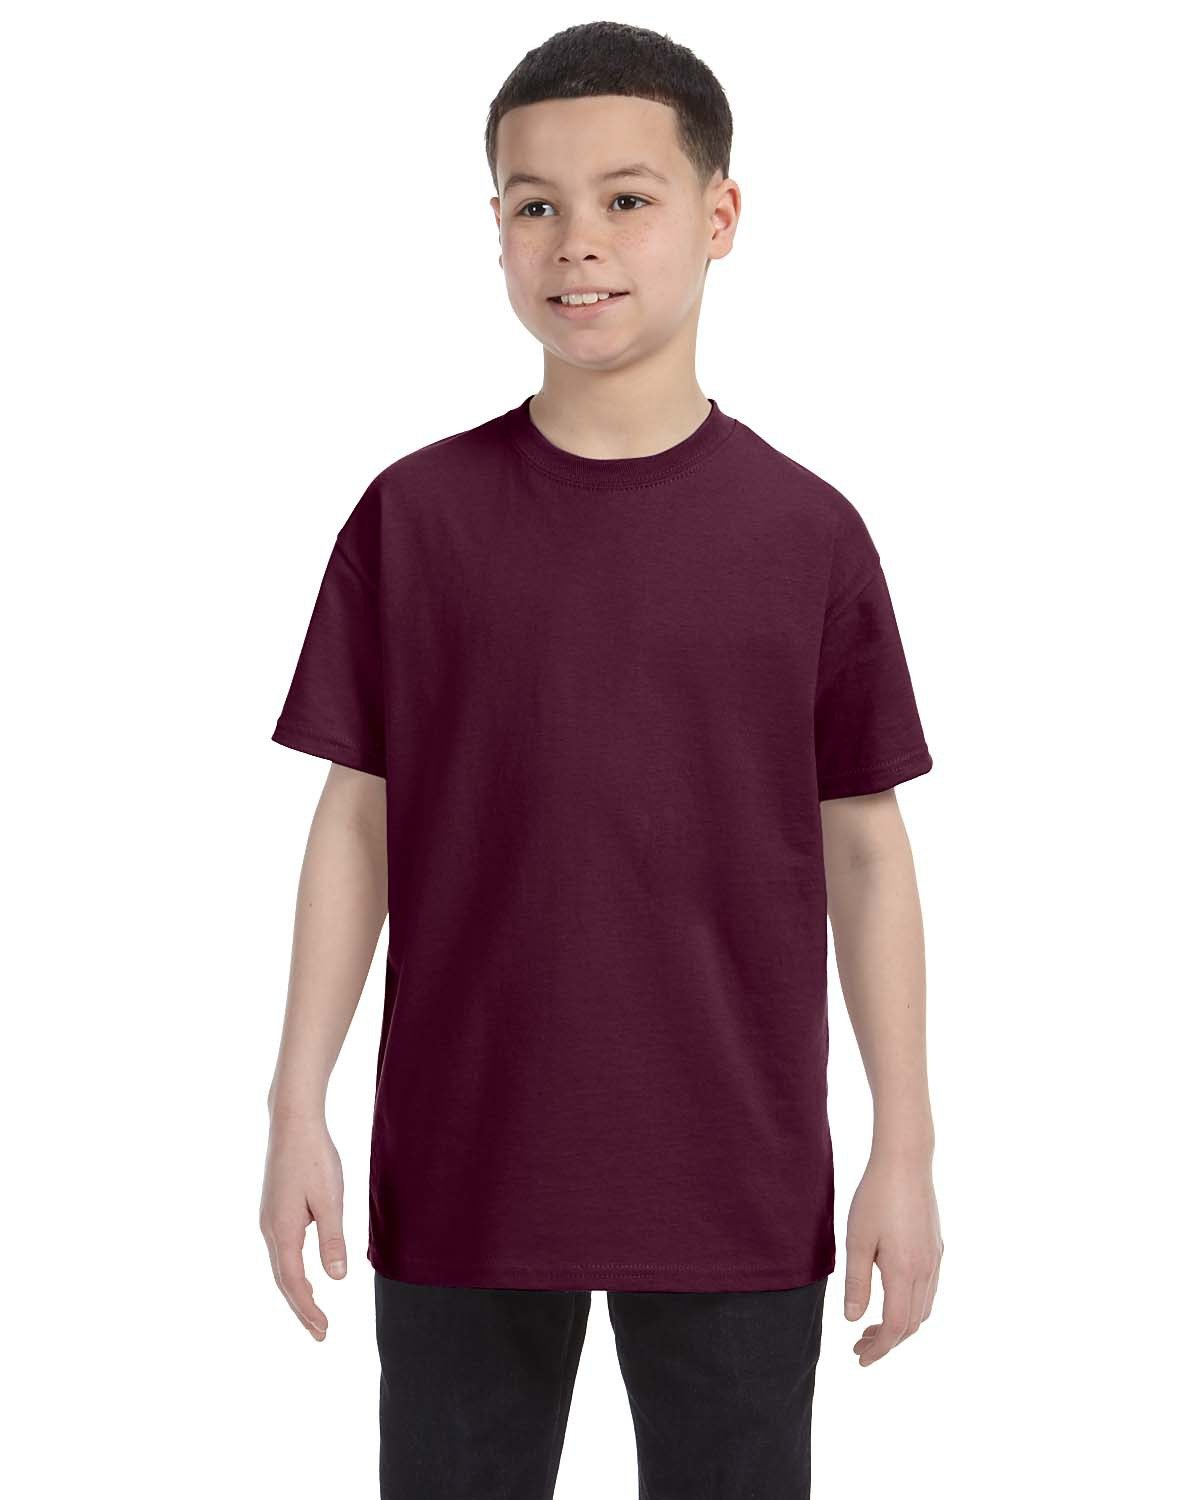 Hanes Youth Authentic-T T-Shirt MAROON